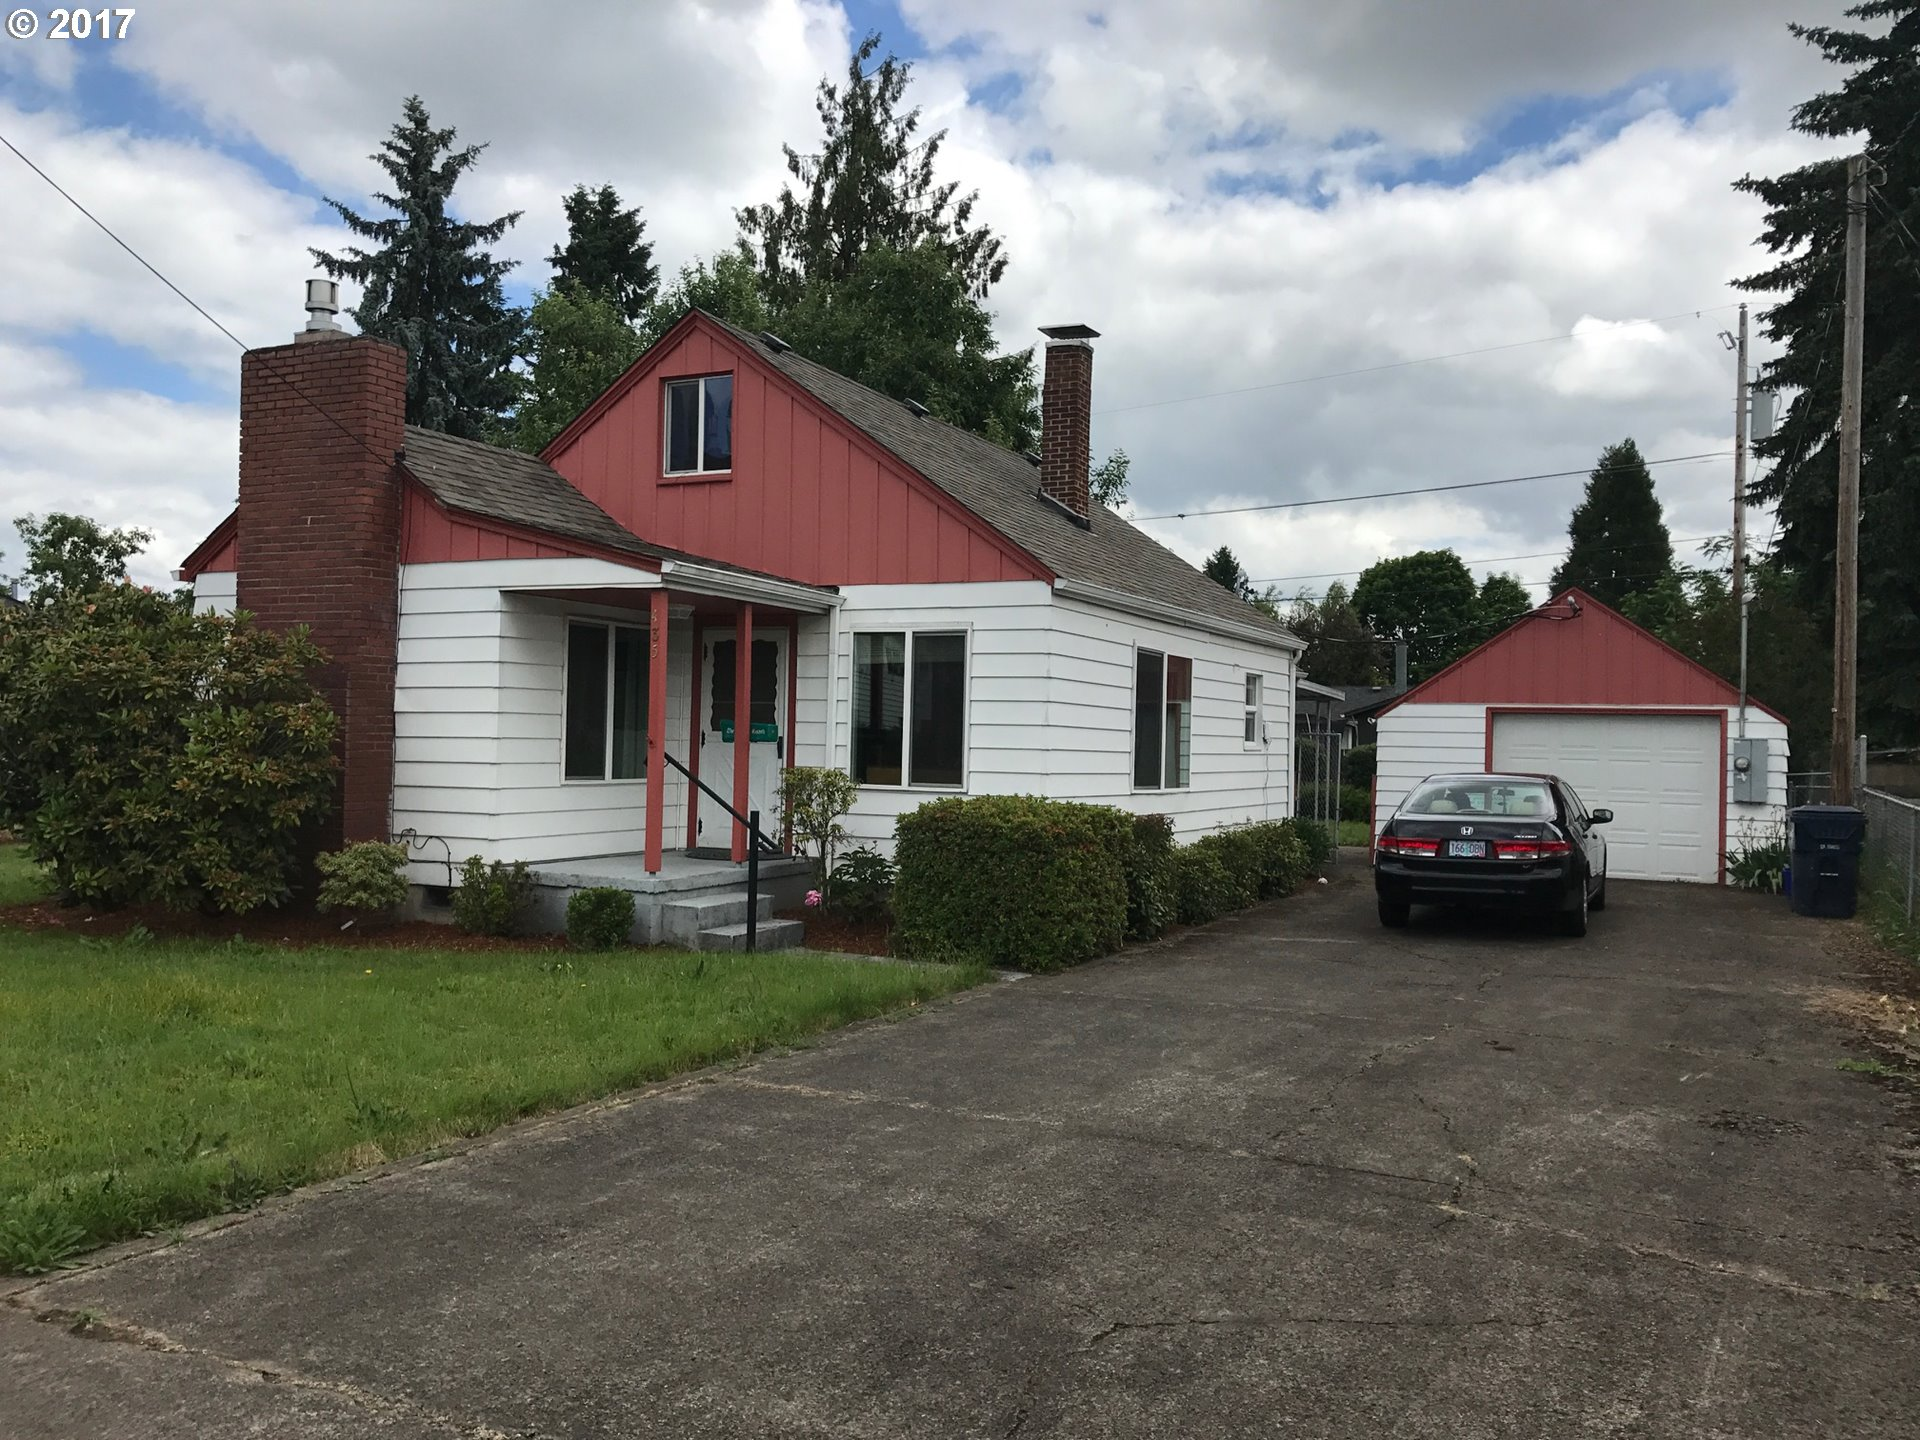 435 S 38TH ST, Springfield, OR 97478